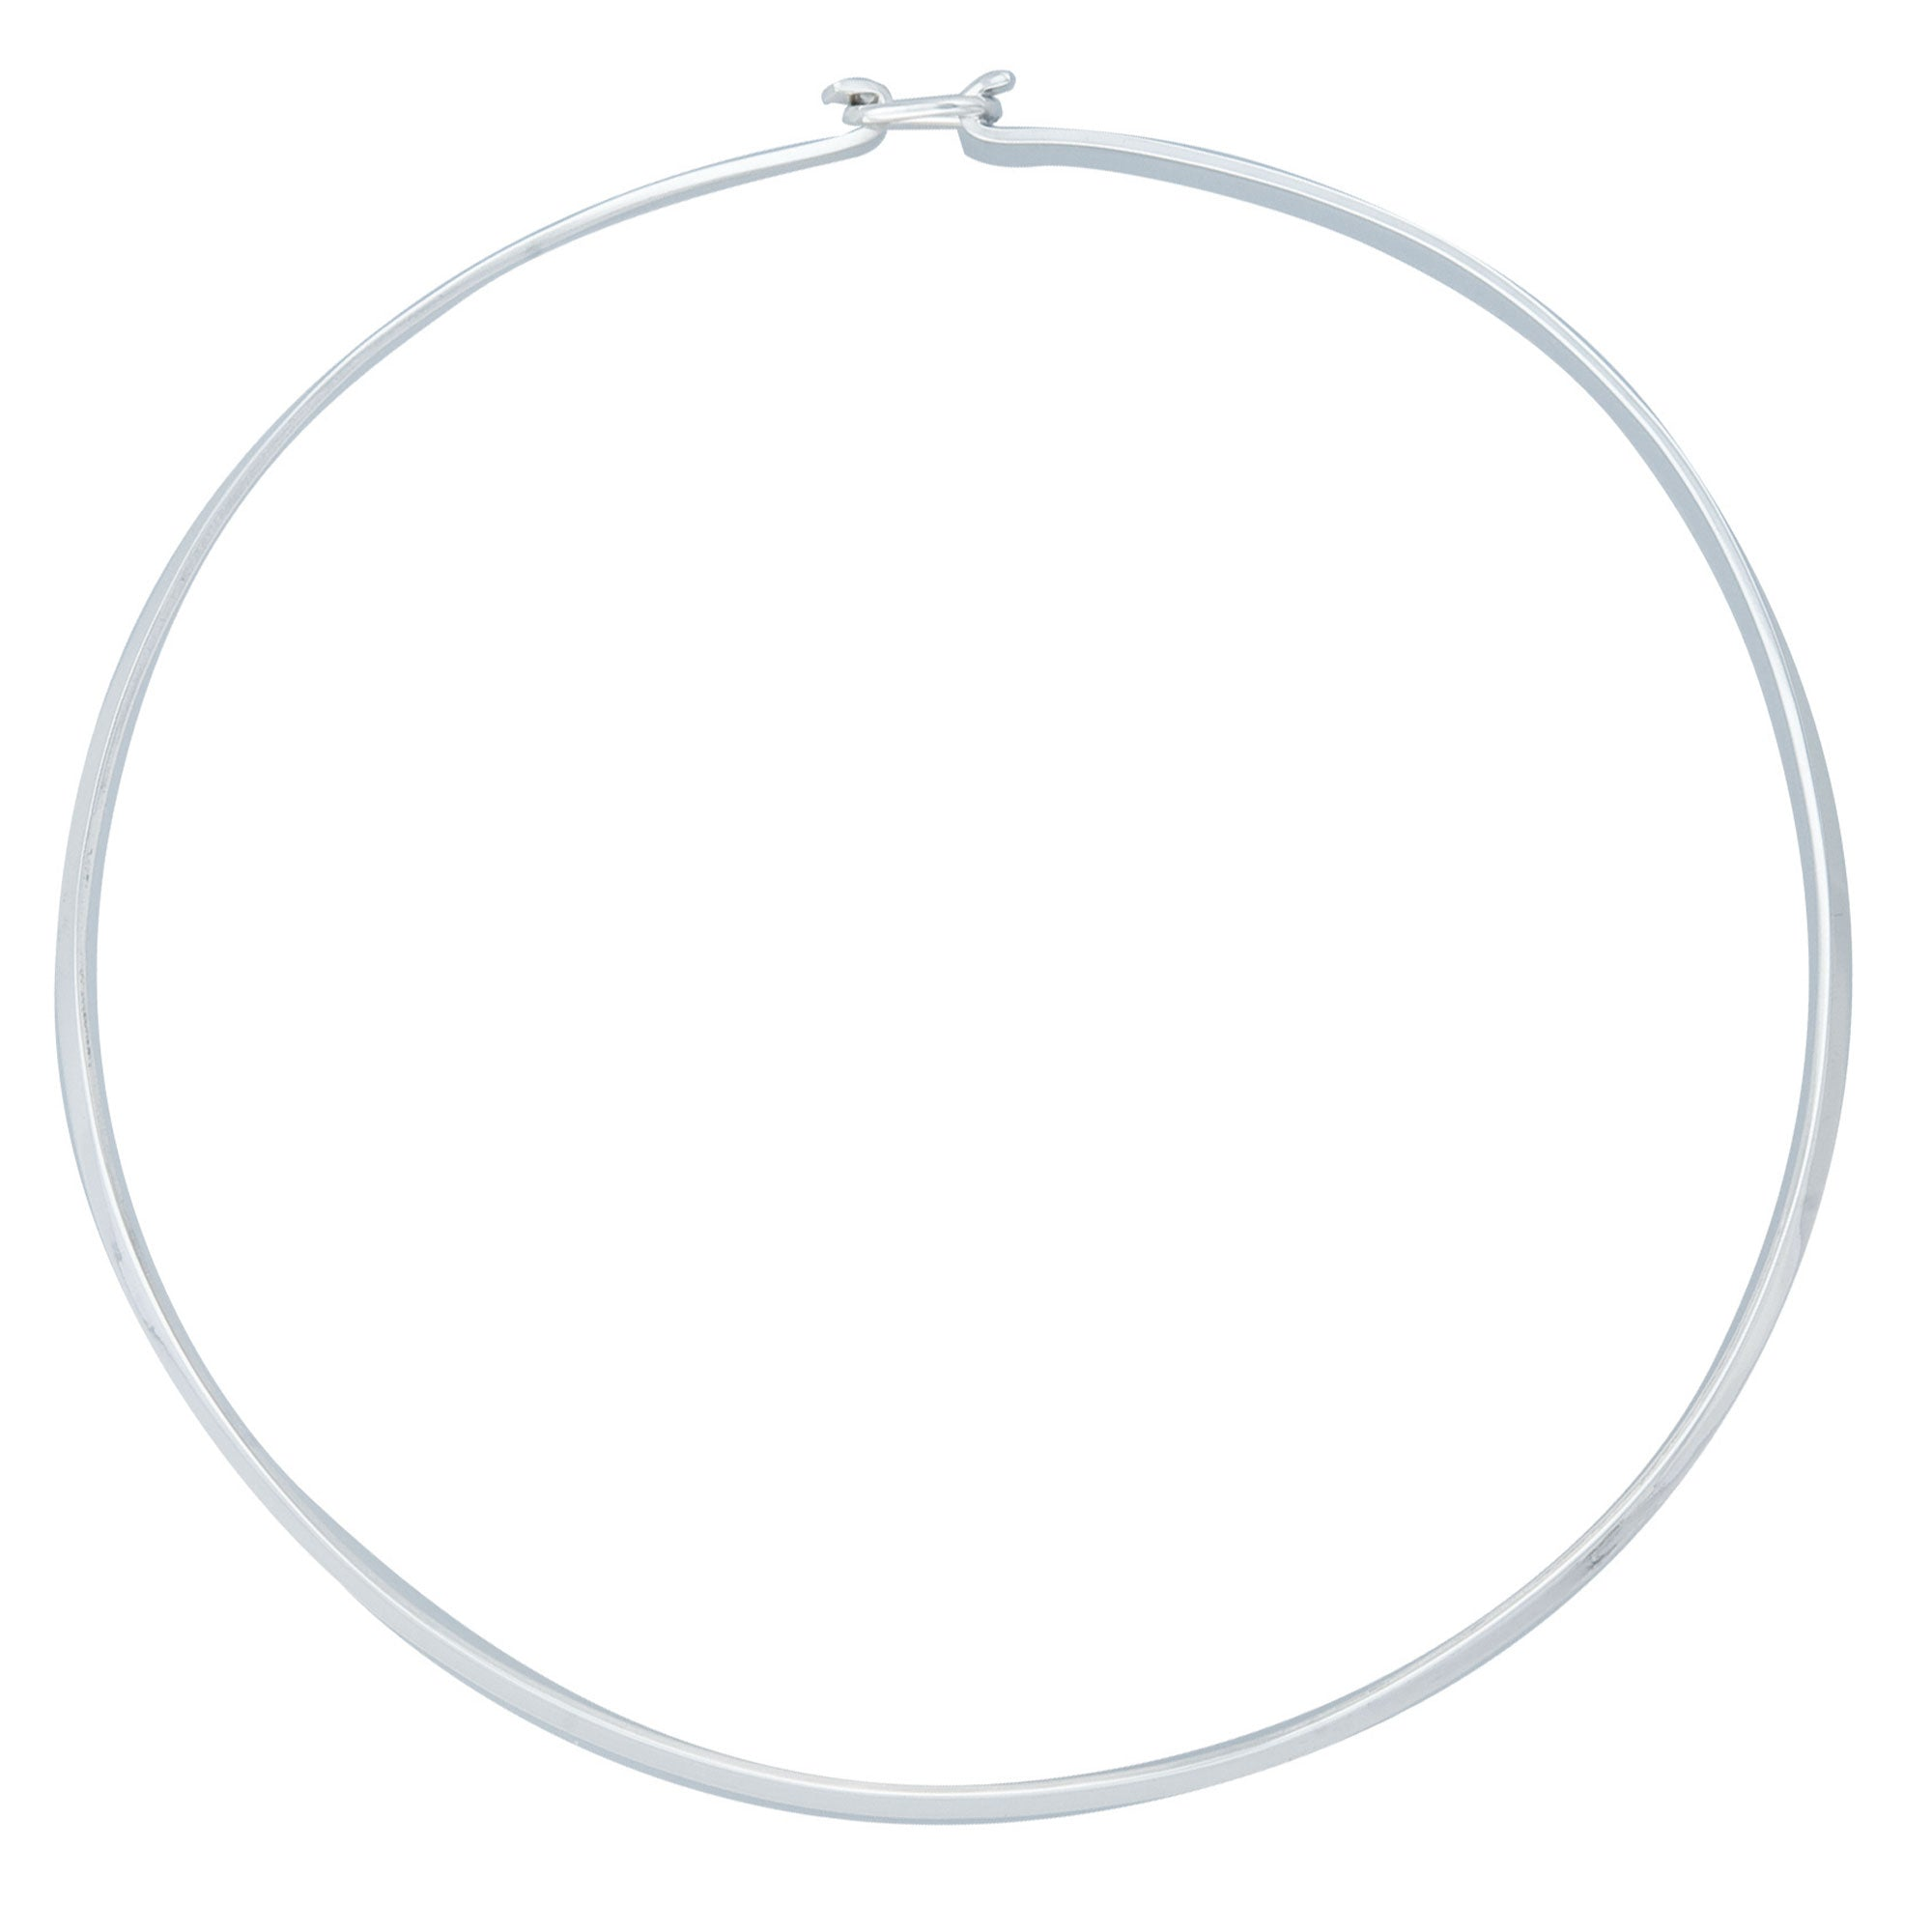 Sterling Silver Thin Round Neckwire with Clasp | Charles Albert Jewelry